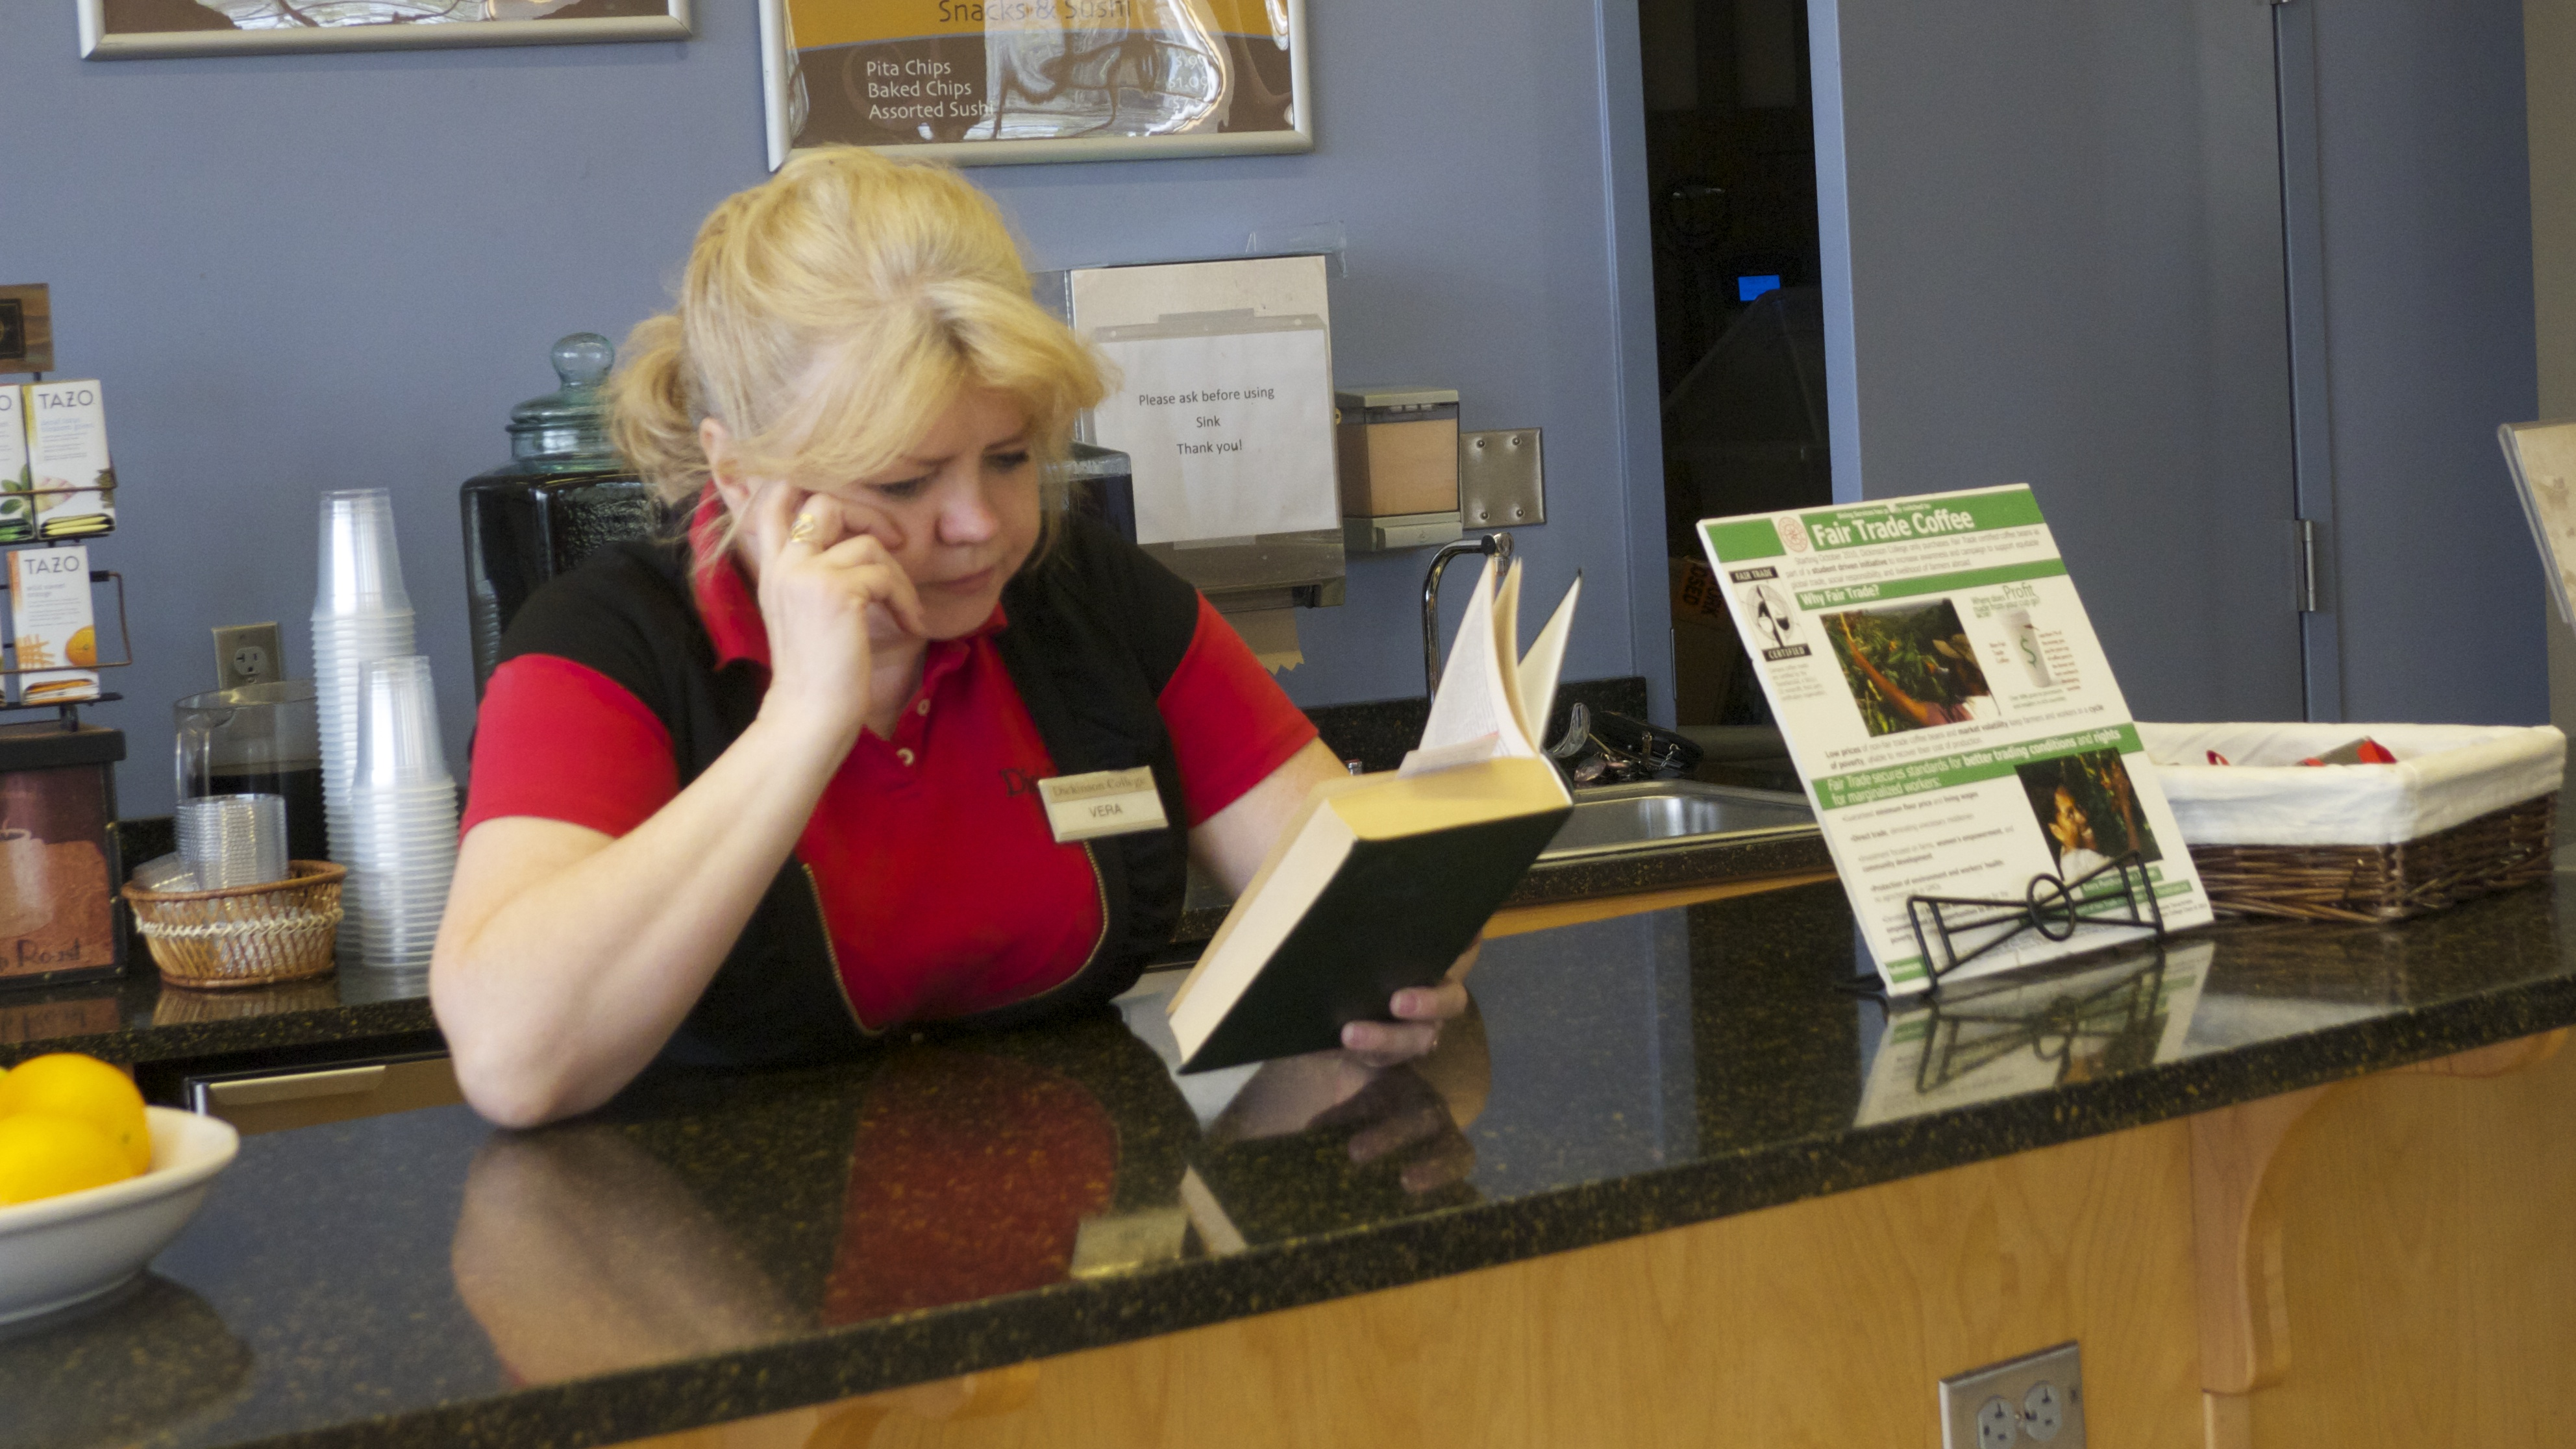 A Dining Services employee brushes up on her Russian Don Quixote at the Biblio Café.